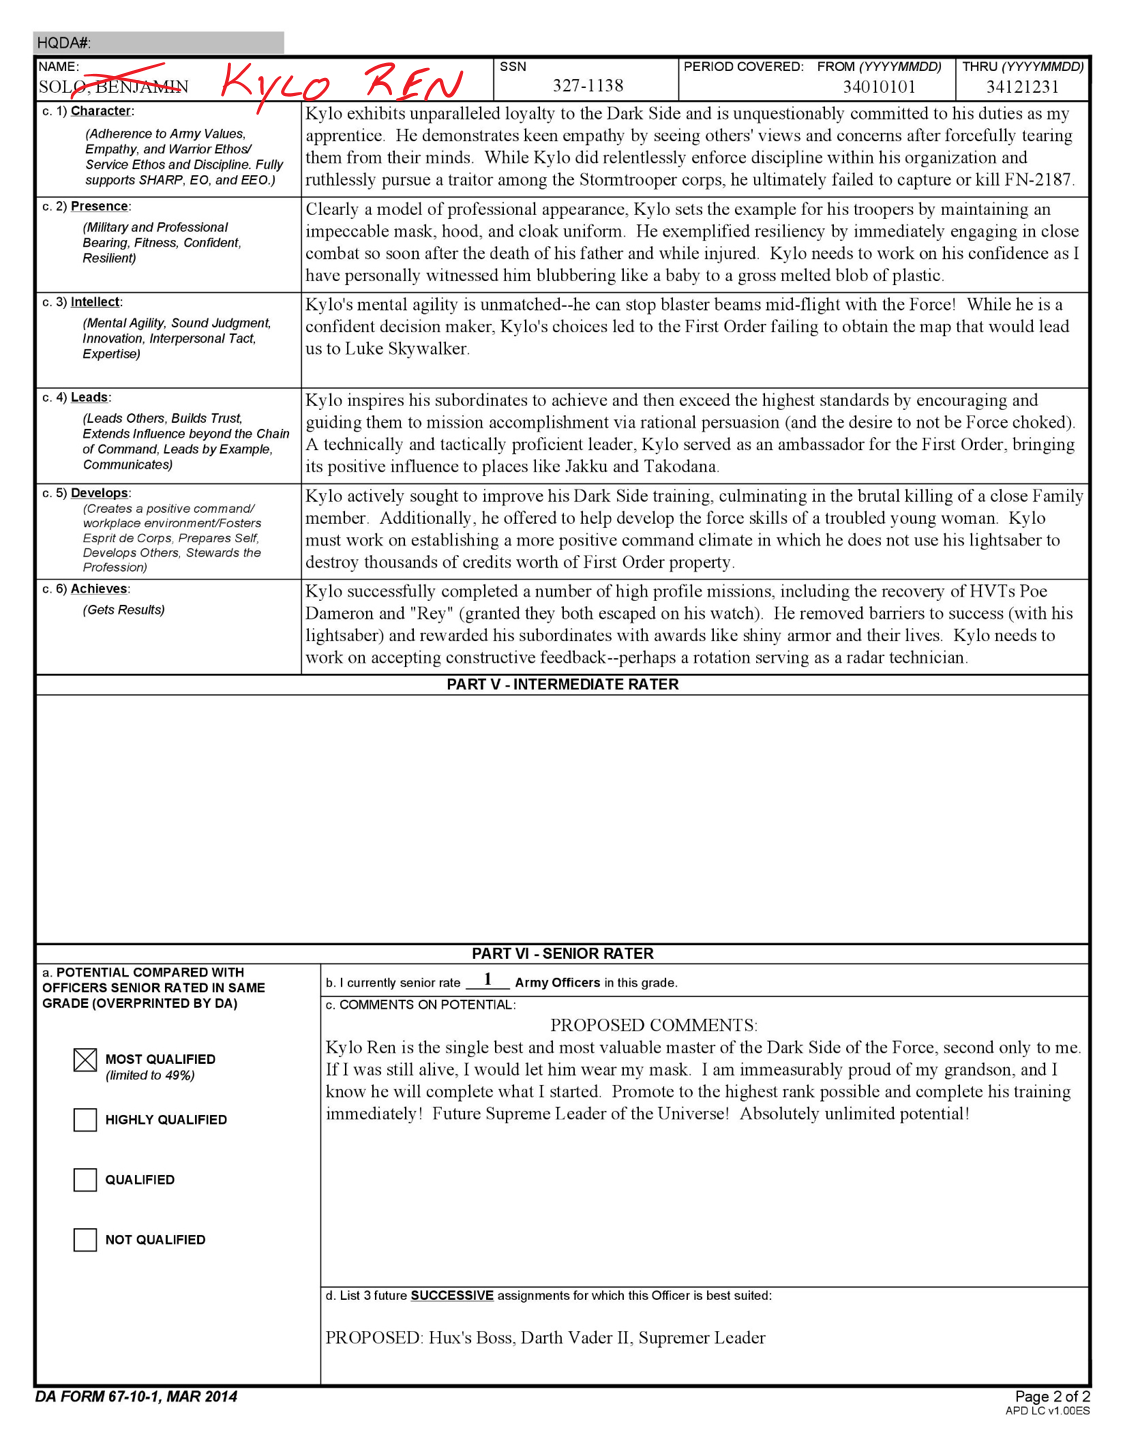 on officer evaluation support form example for 42b